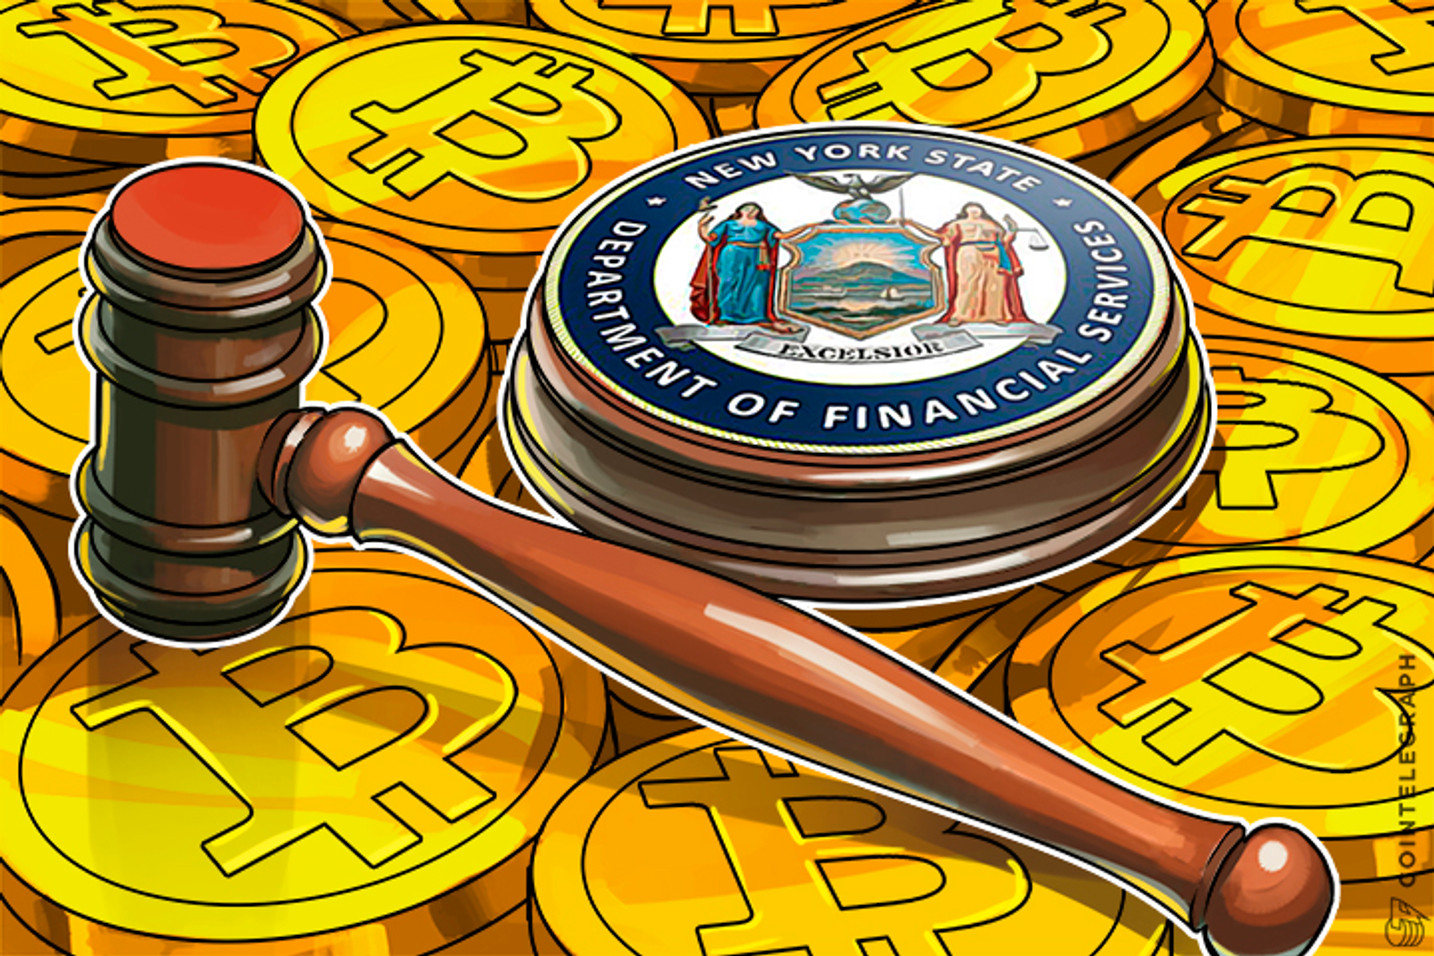 US First Cyber Security Regulation to Pressure Bitcoin Companies